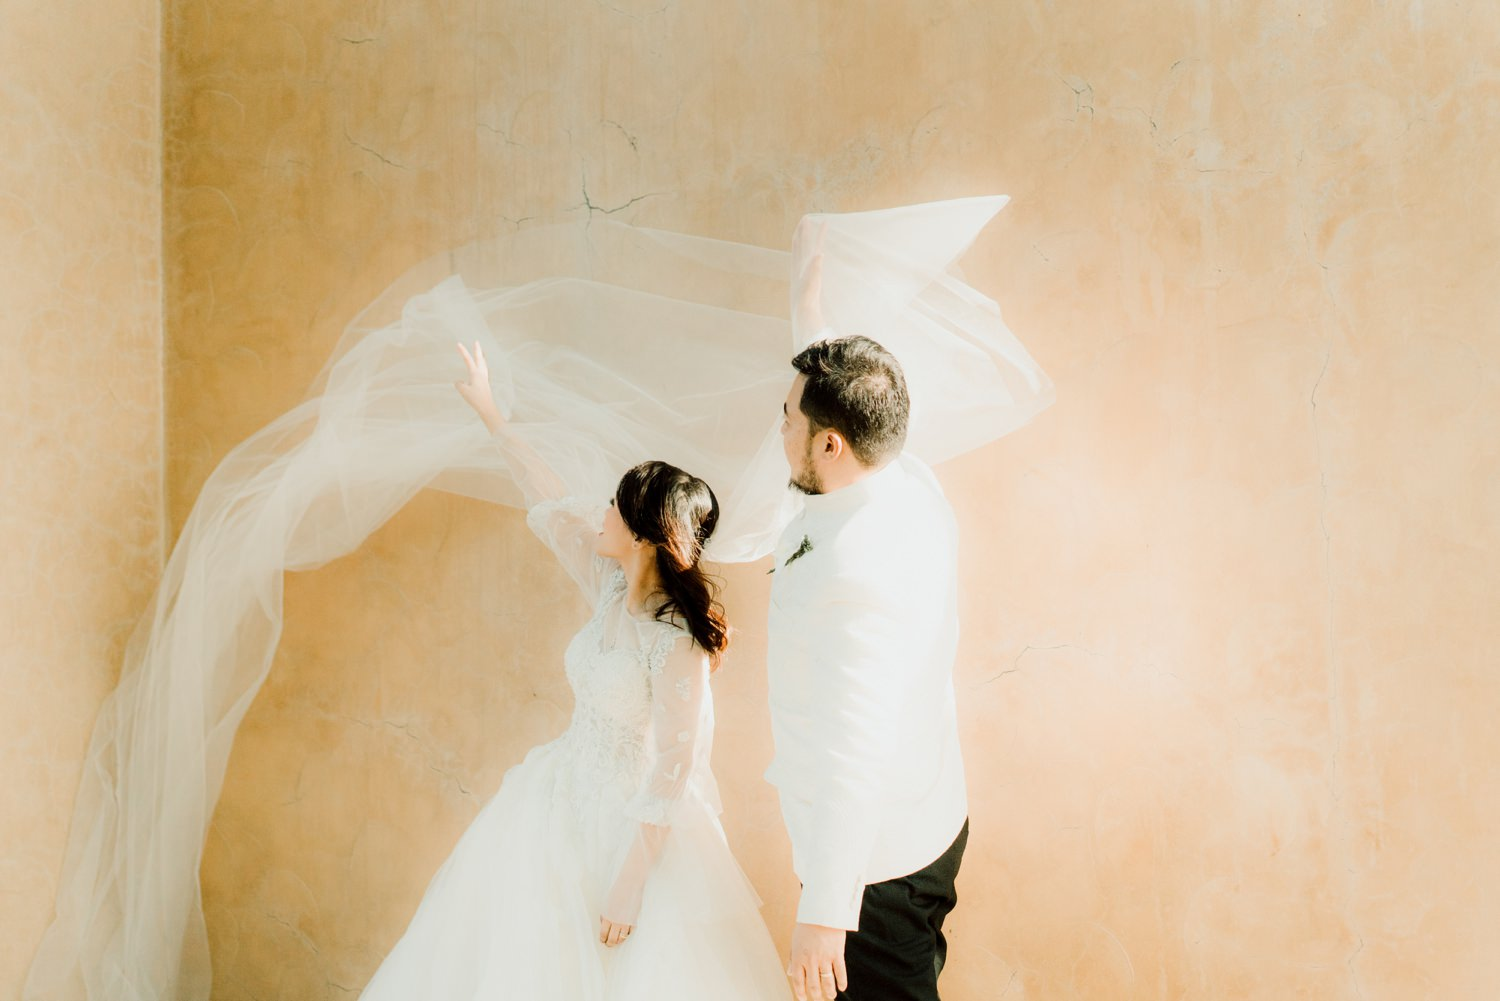 Oak St. Studios - Sarah and Rowell - Tagaytay Wedding Photograher